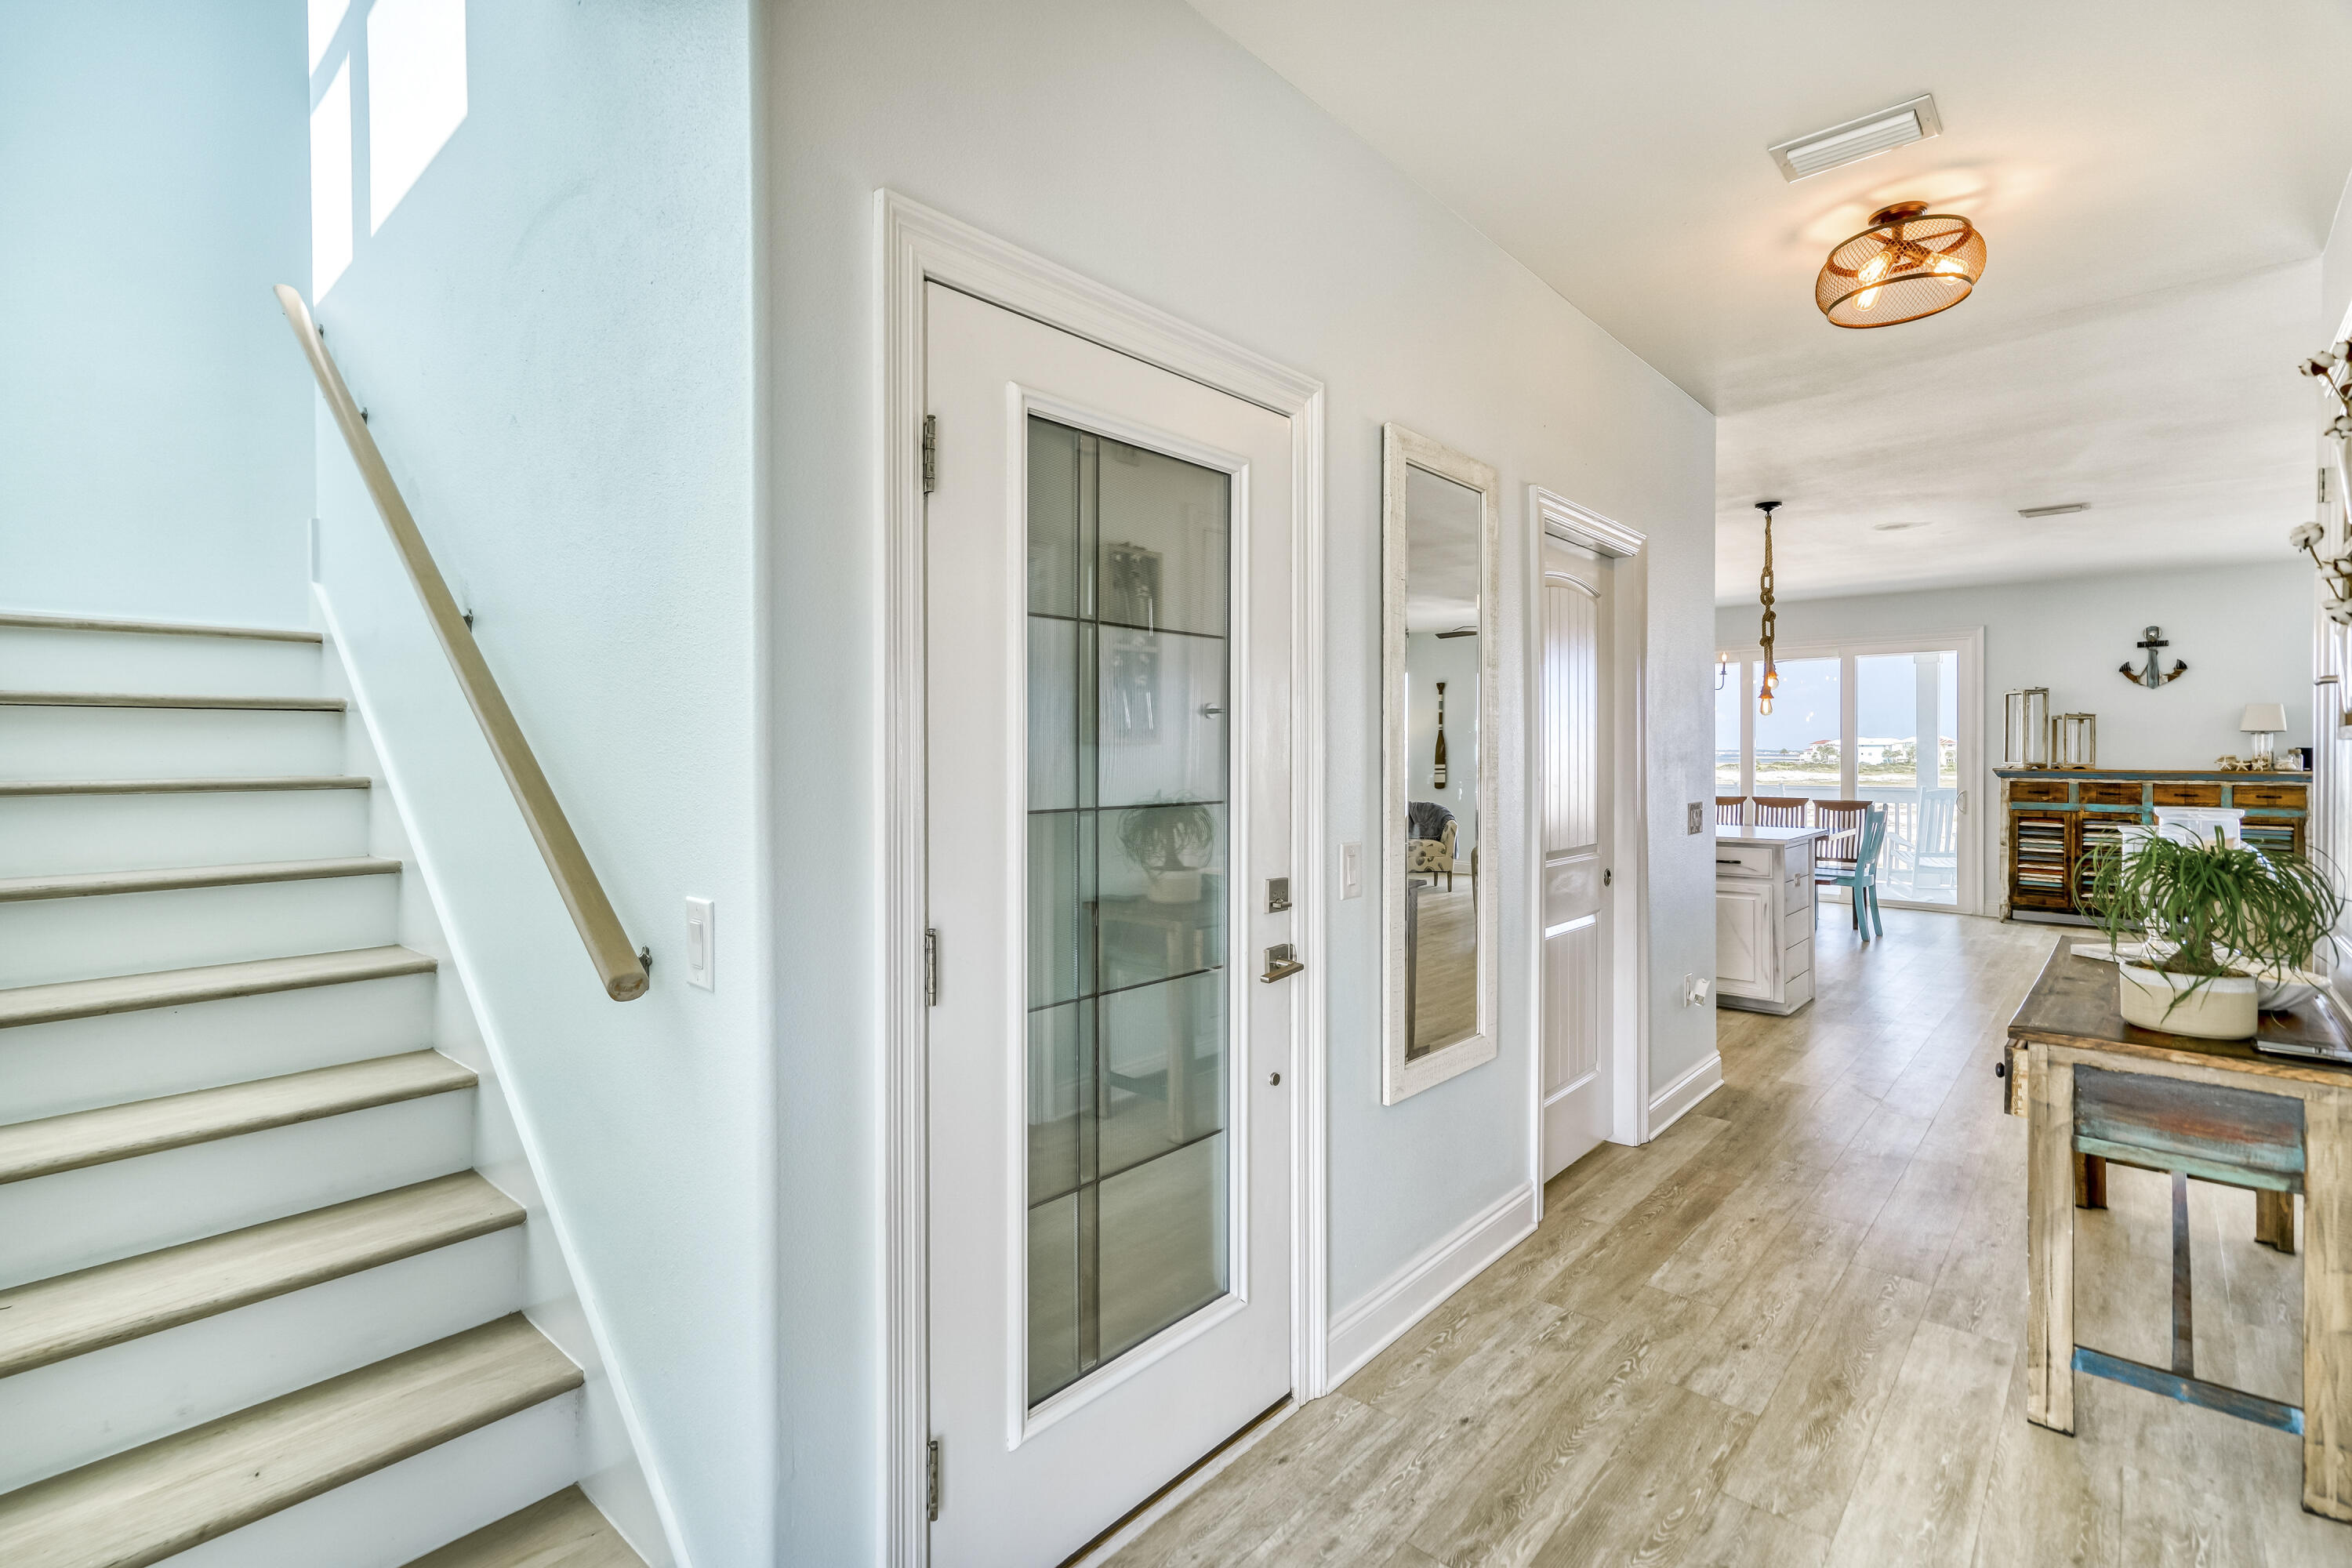 ENTRY FOYER - STAIRS TO THIRD FLOOR